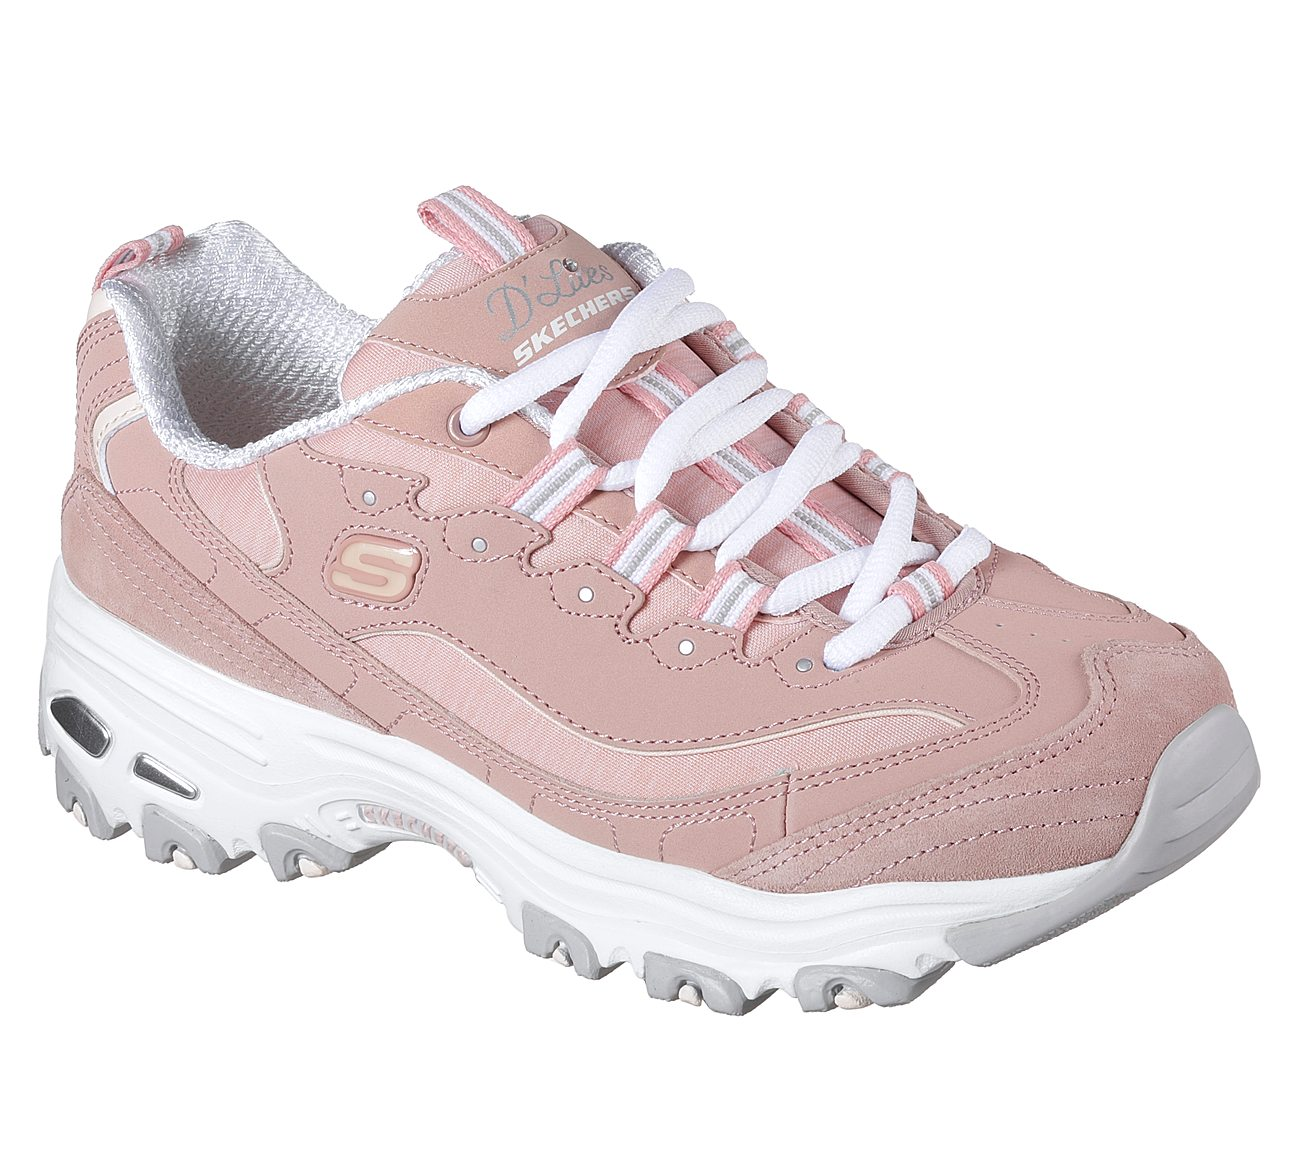 Womens Skechers D'Lites Me Time Athletic Sneakers